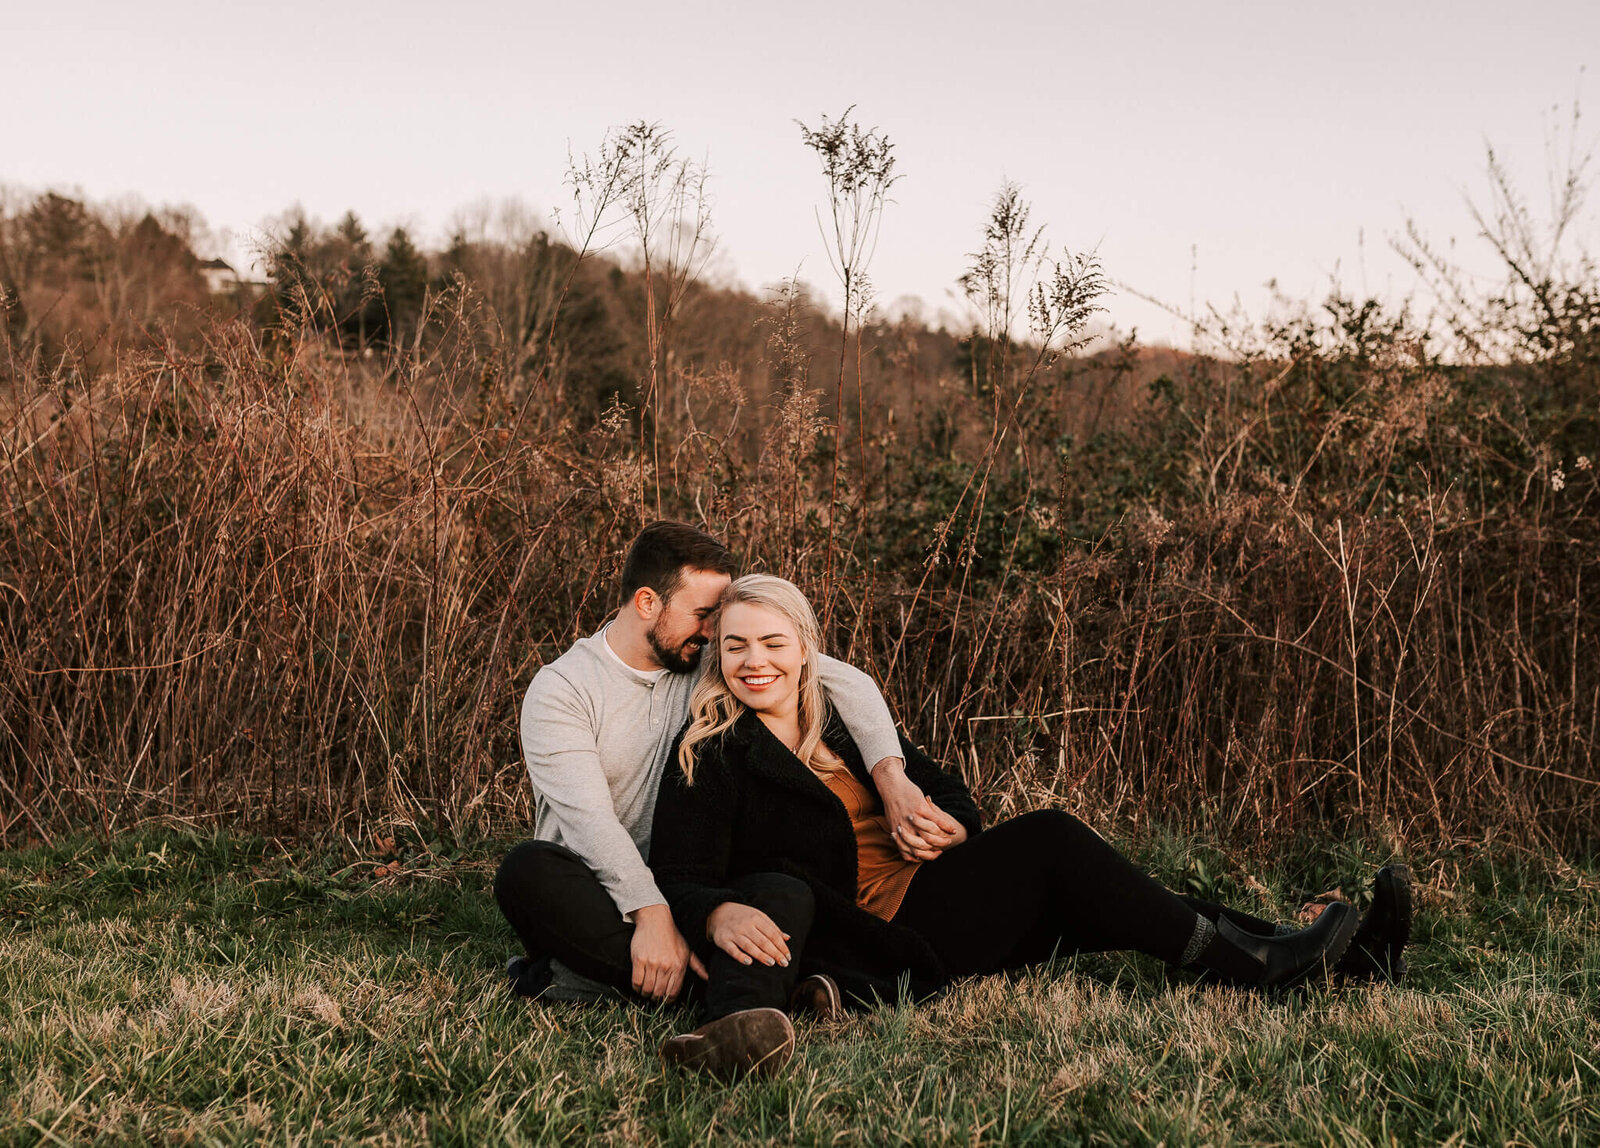 brevard-engagement-photographer-anorda-photography-03